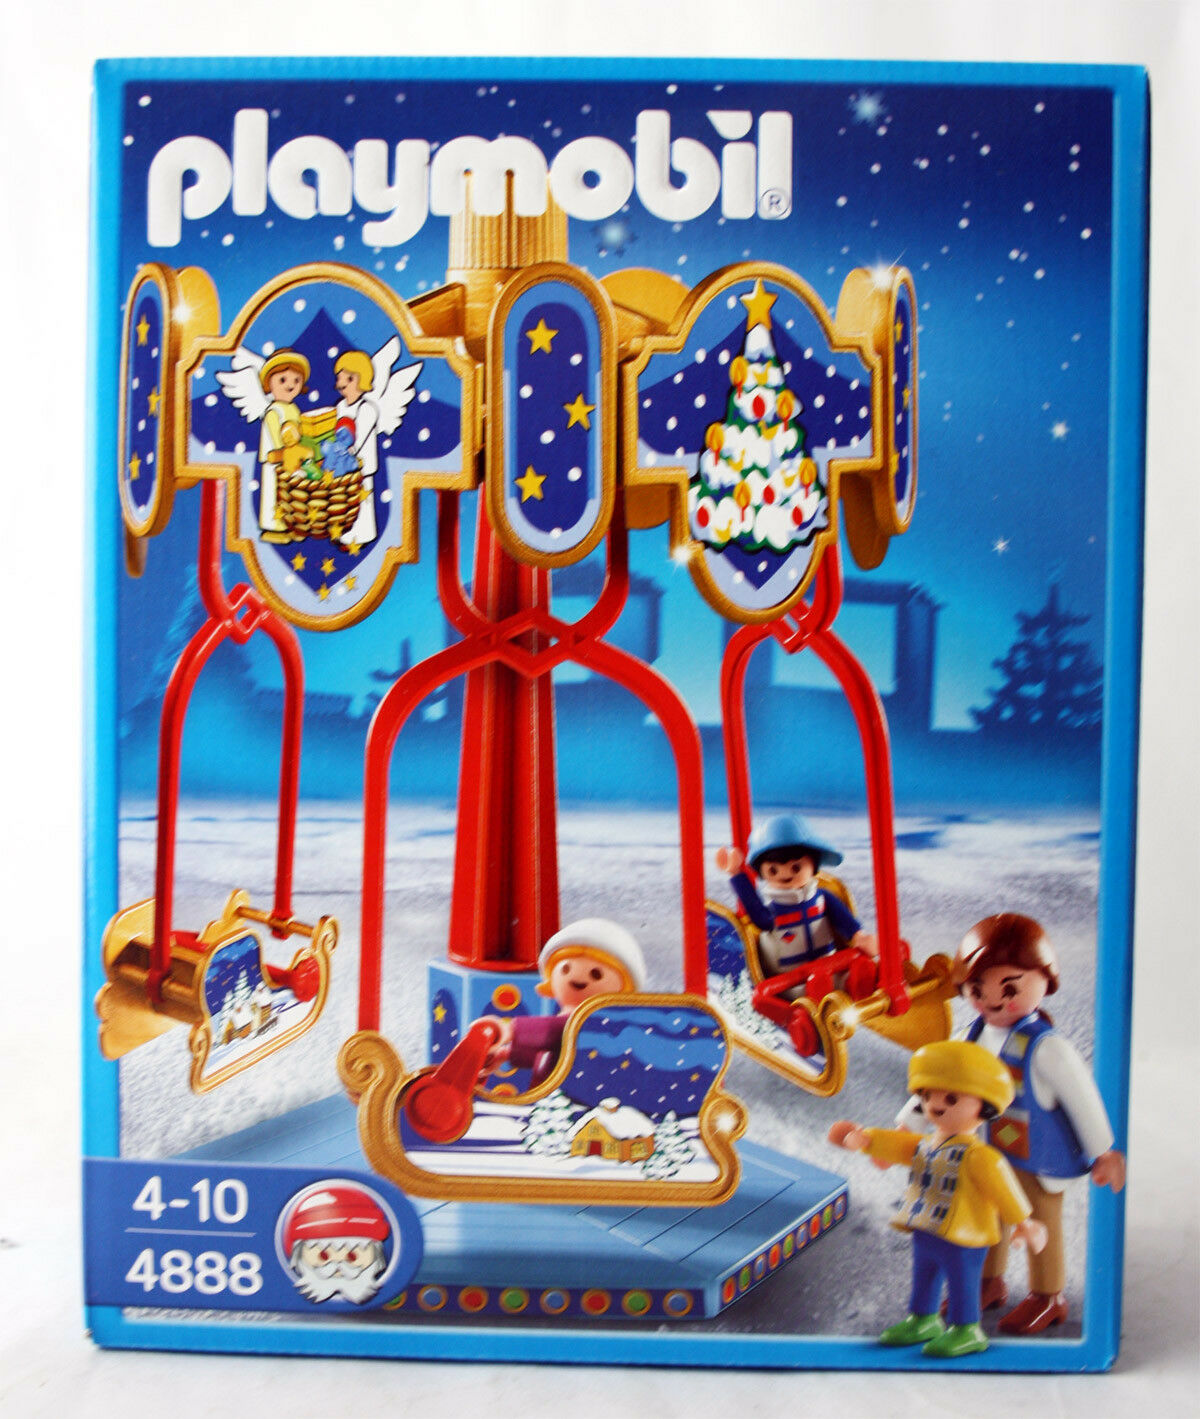 RARE 2009 PLAYMOBIL 4888 CHRISTMAS SLED autoOUSEL RETIrosso  nuovo SEALED MISB    protezione post-vendita